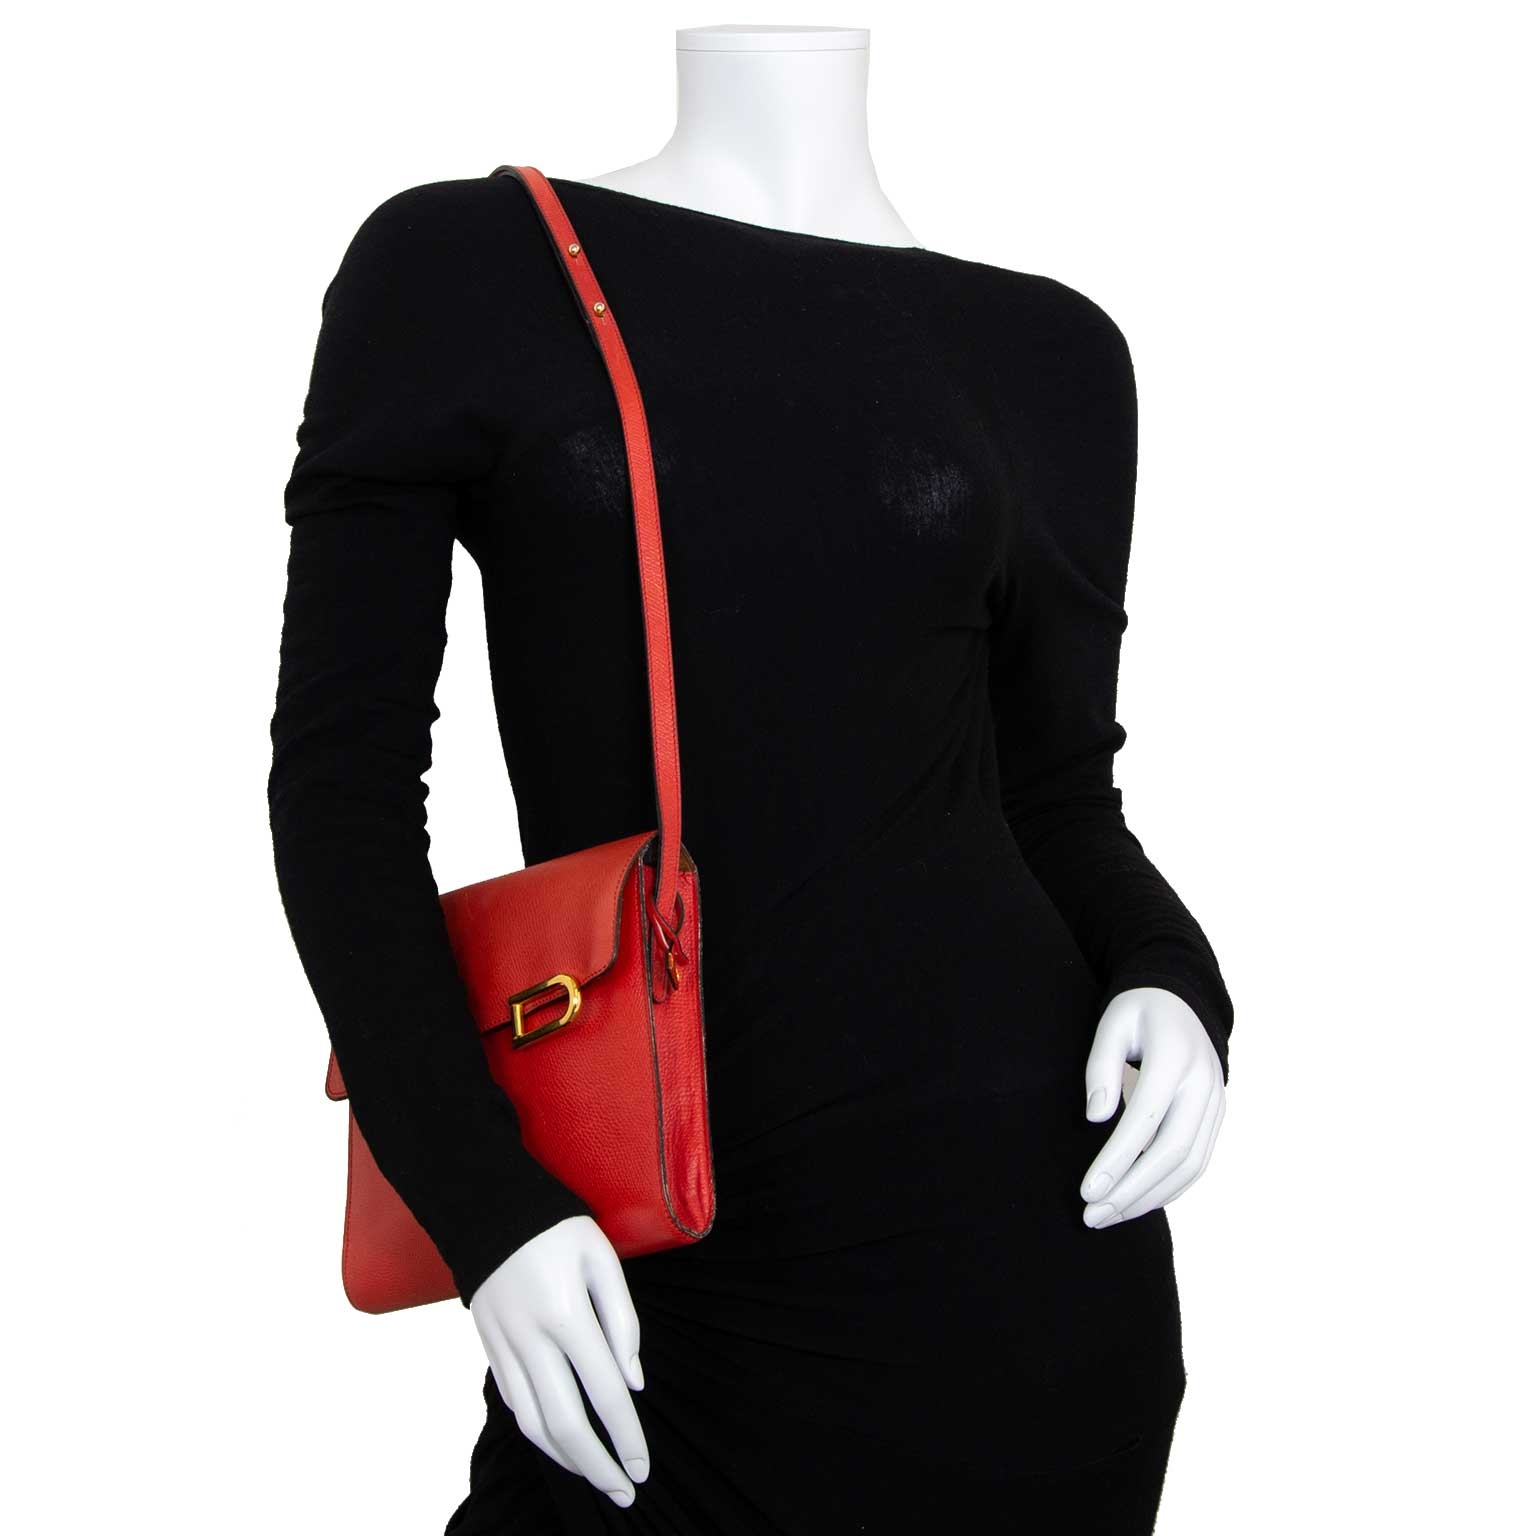 delvaux red leather crossbody bag now for sale at labellov vintage fashion webshop belgium